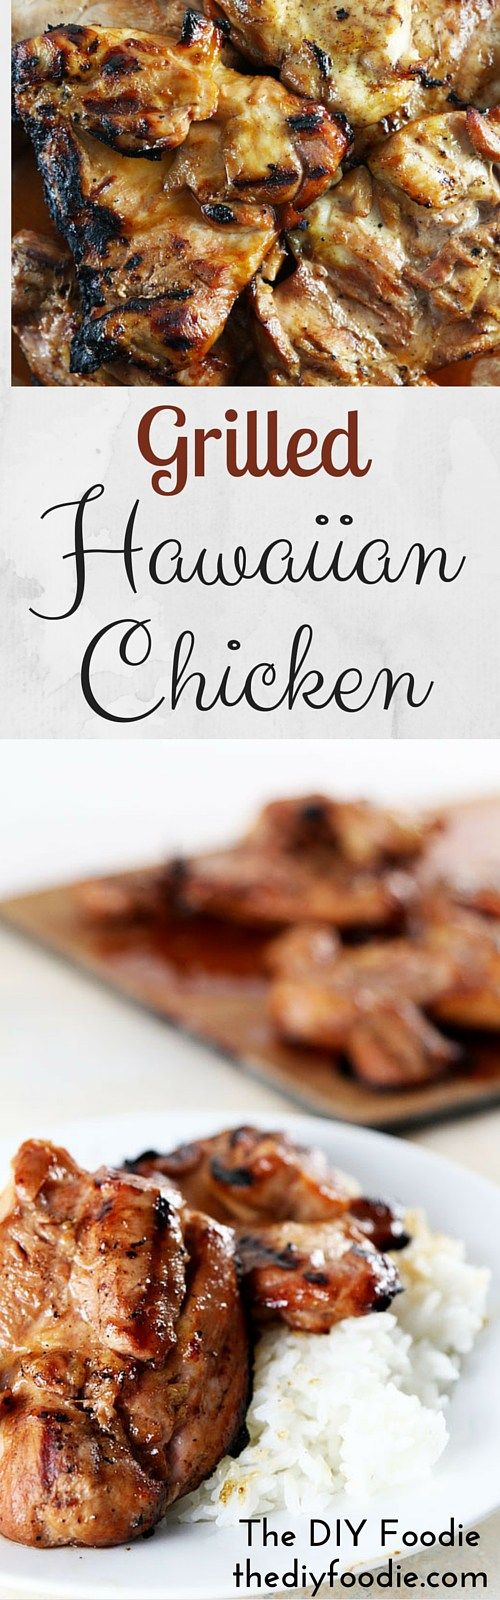 OMG, this Hawaiian Chicken is to die for!!